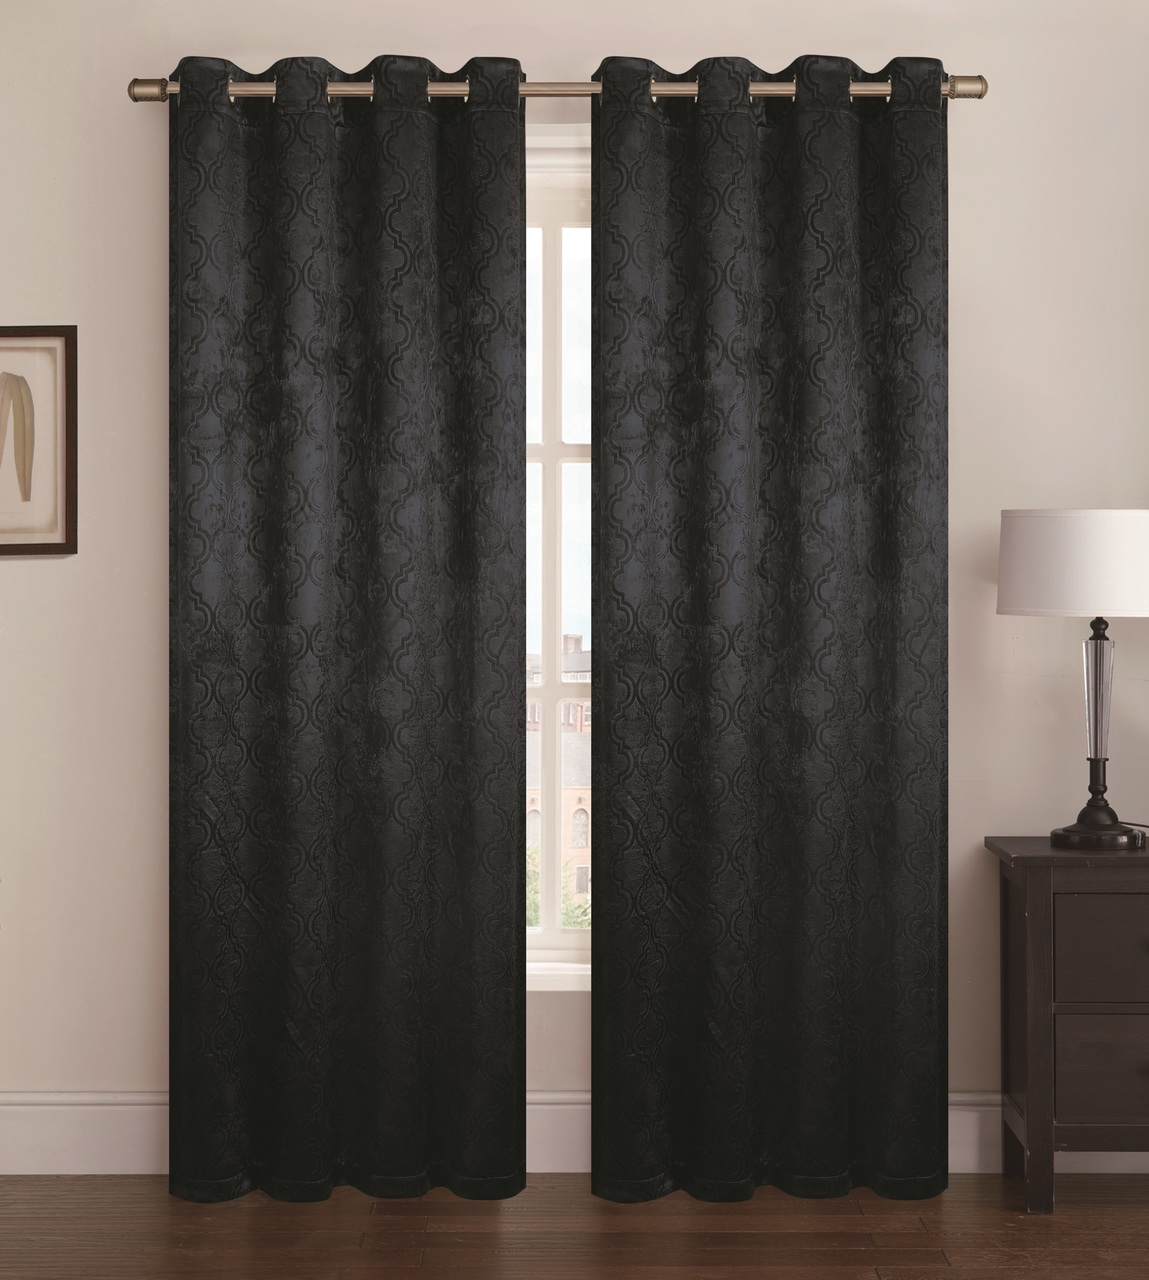 "Single Geometric Jacquard Blackout - Room Darkening Window Curtain Panel with Grommets, Paige, 53""x84"" (Black)"